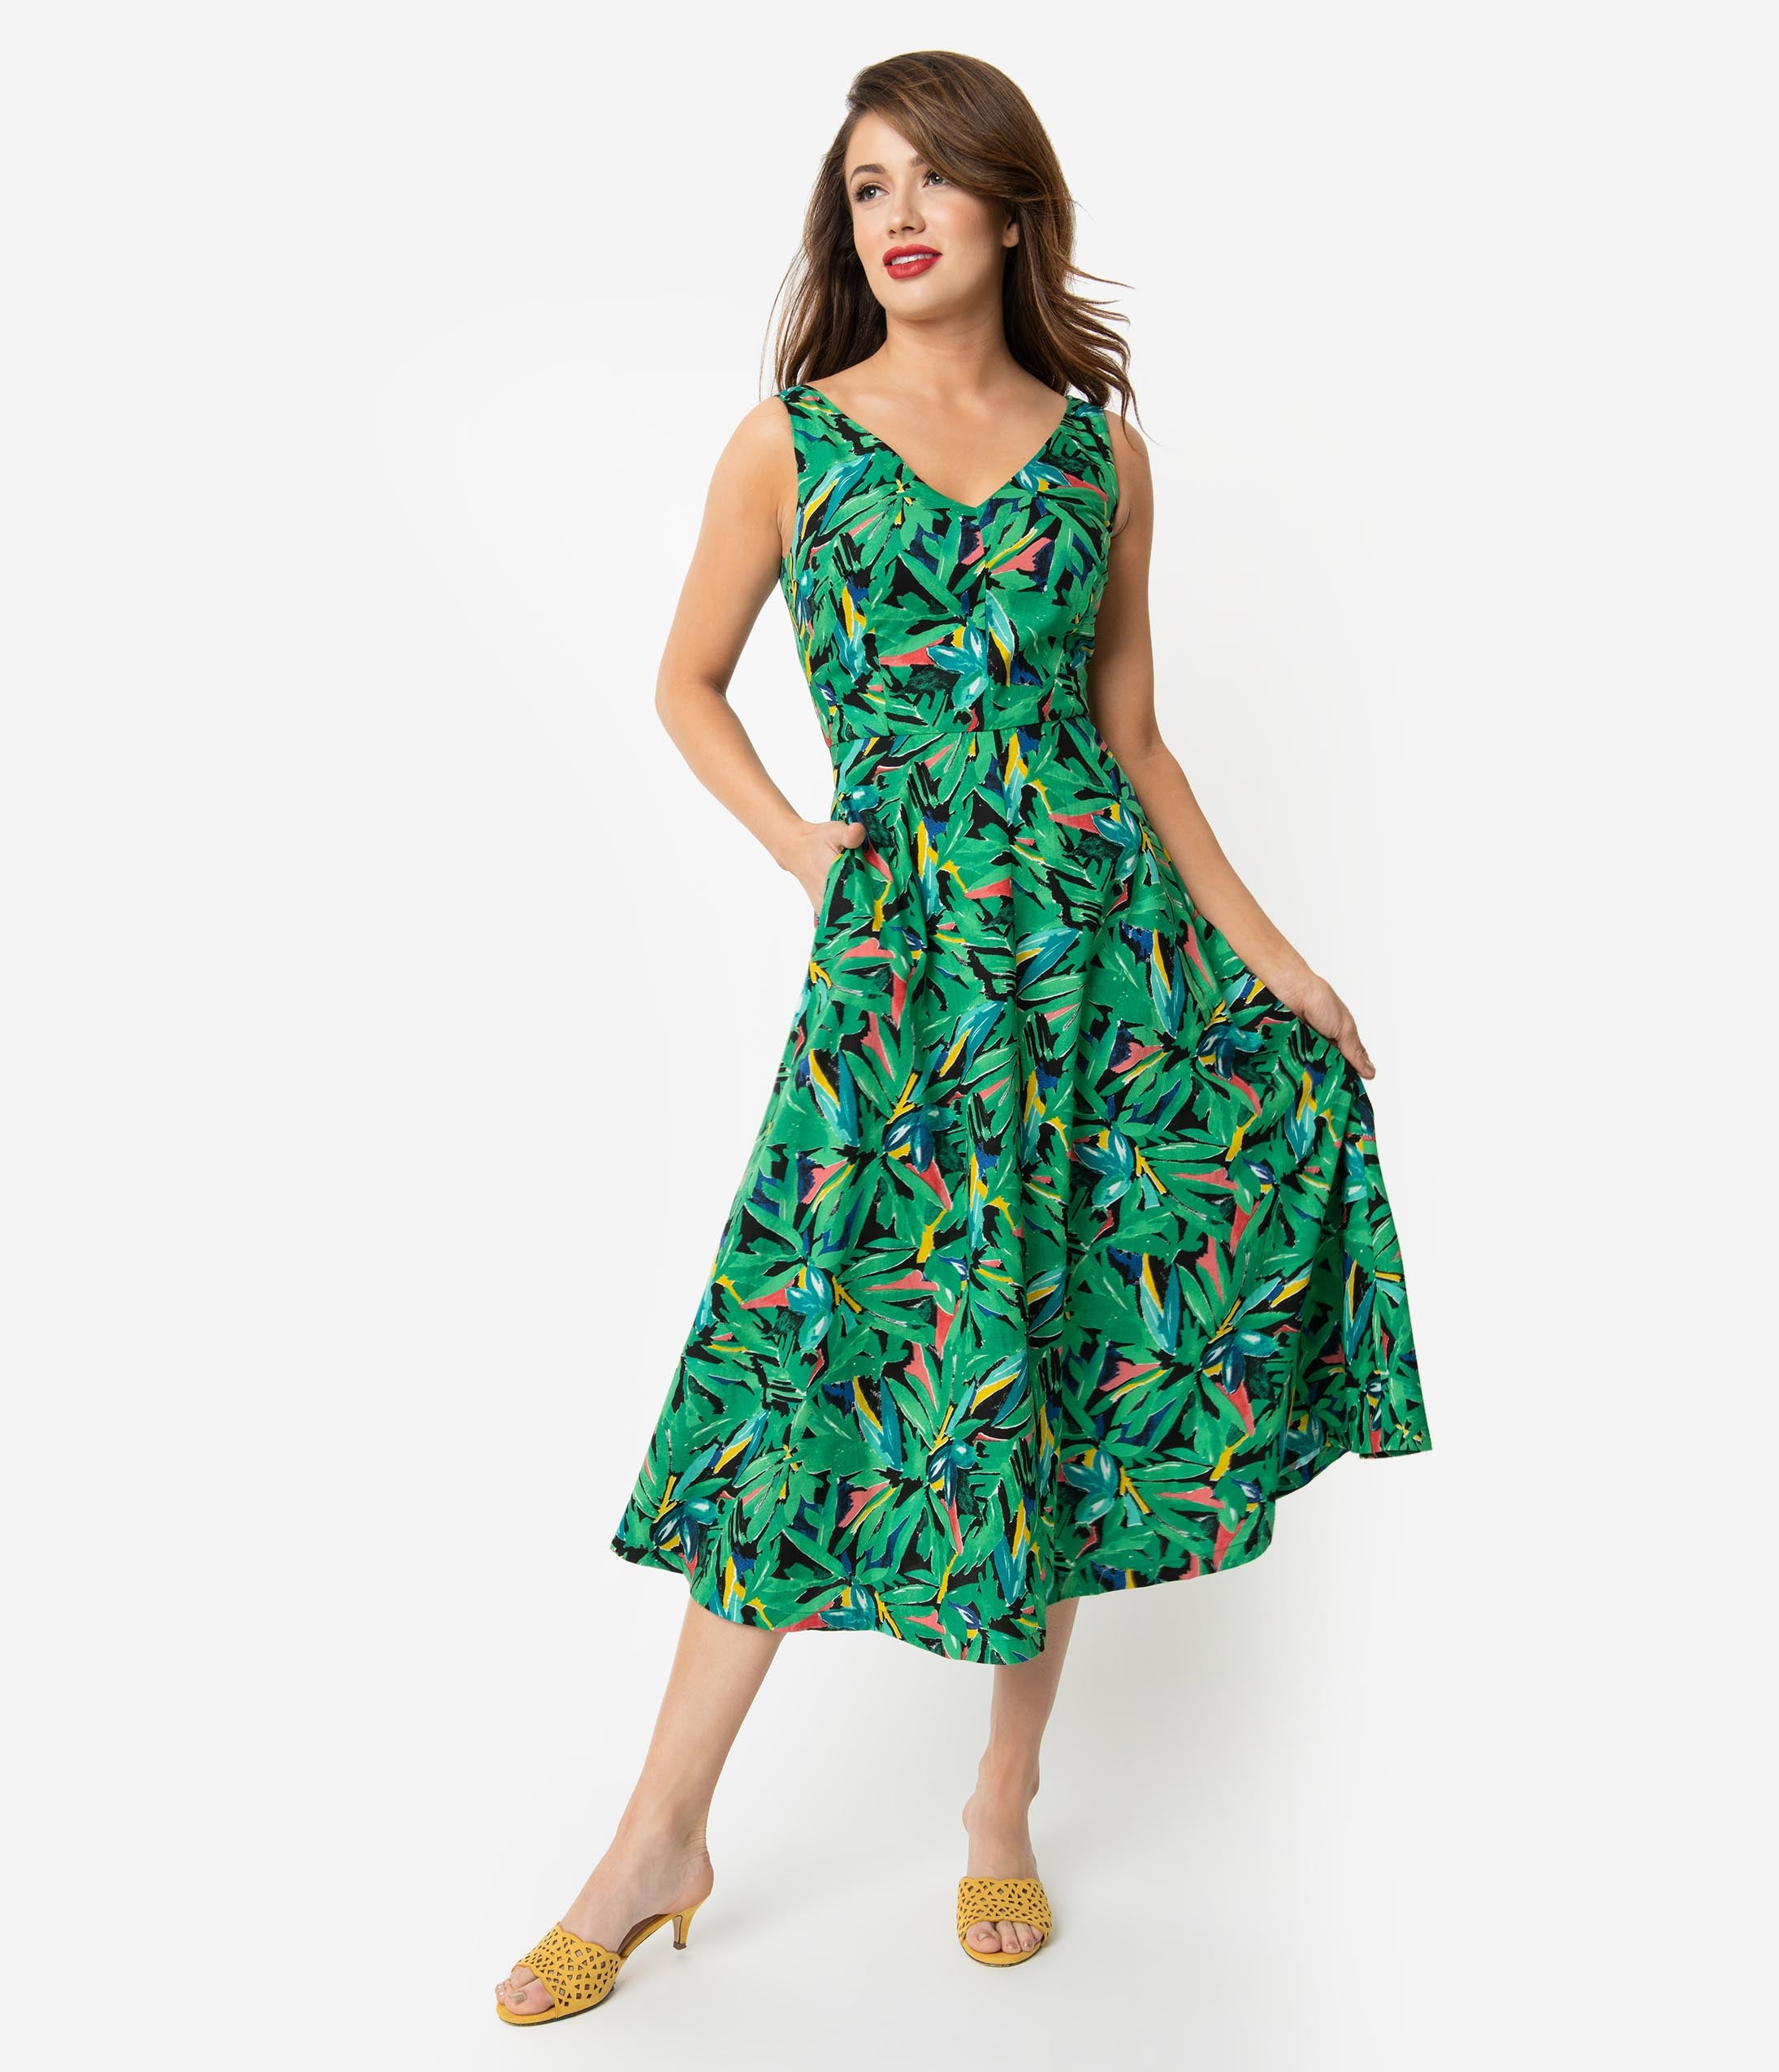 35cea6afe8 Retro Tiki Dress – Tropical, Hawaiian Dresses Emily Fin 1940S Style Green  Hothouse Palms Print